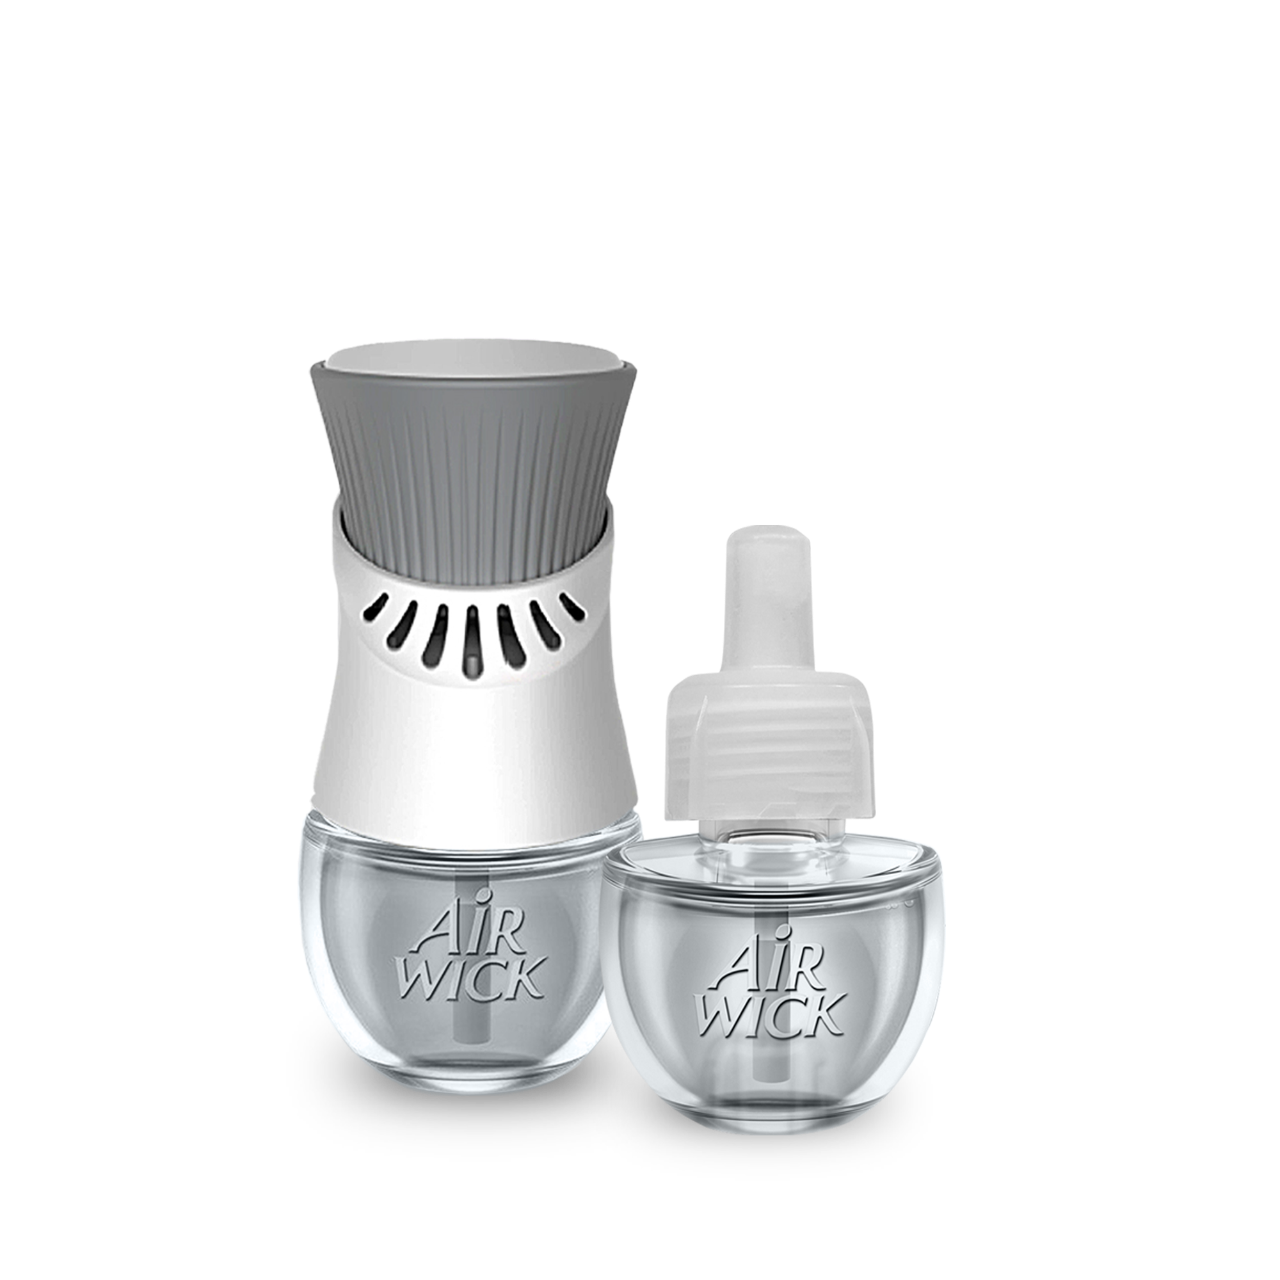 Image of Essential Oil Device with Refill